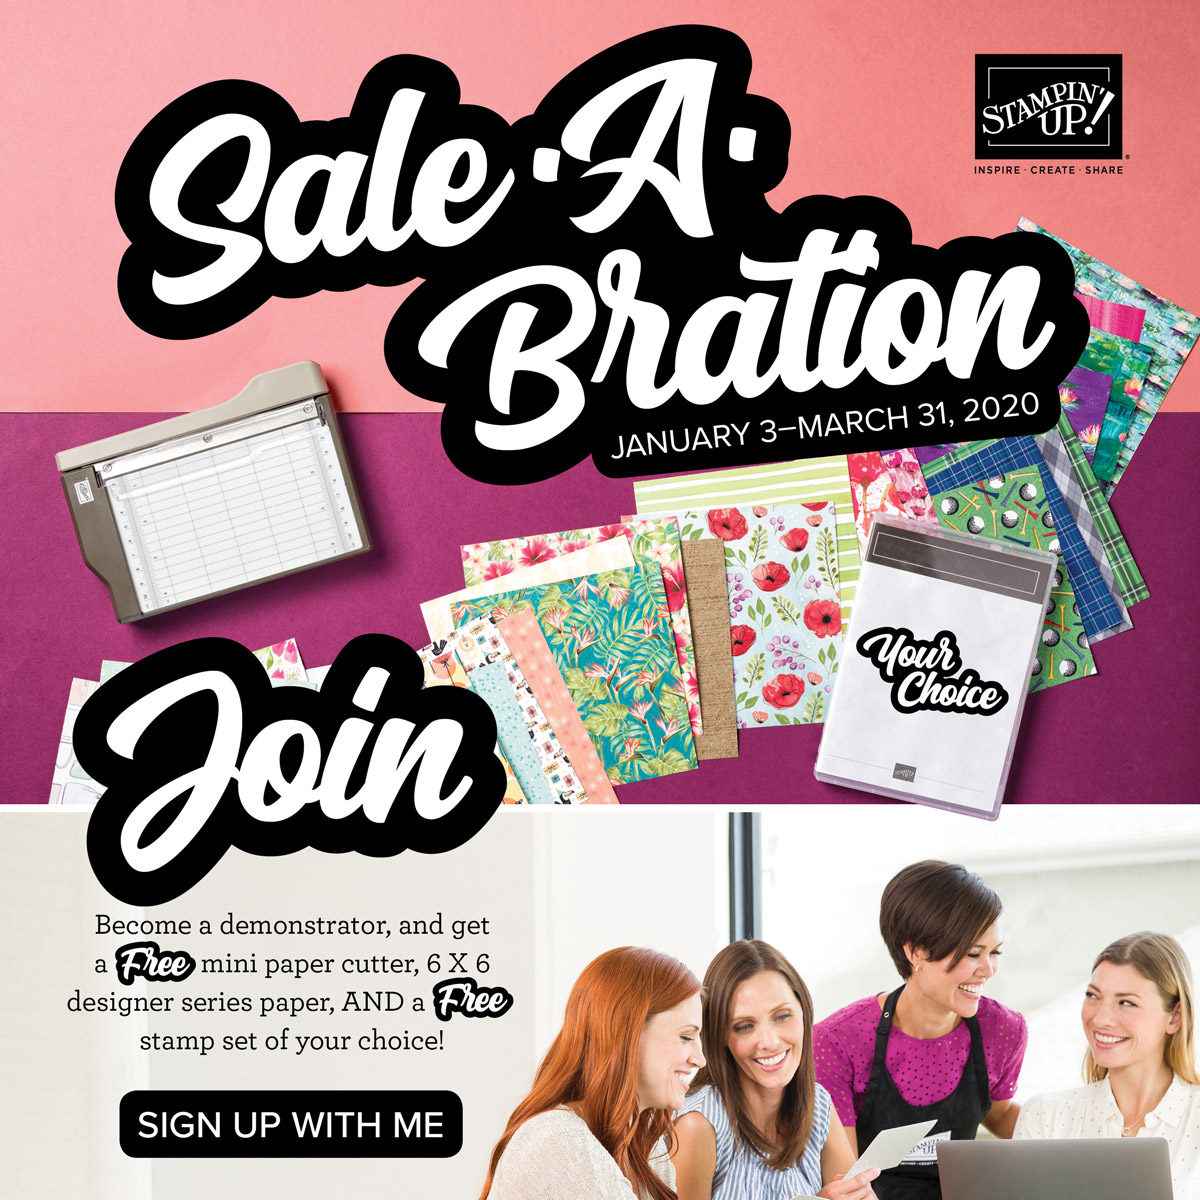 Now is the perfect time to Join My Team and Stampin' Up! Details are on my blog here: https://wp.me/p59VWq-aGh